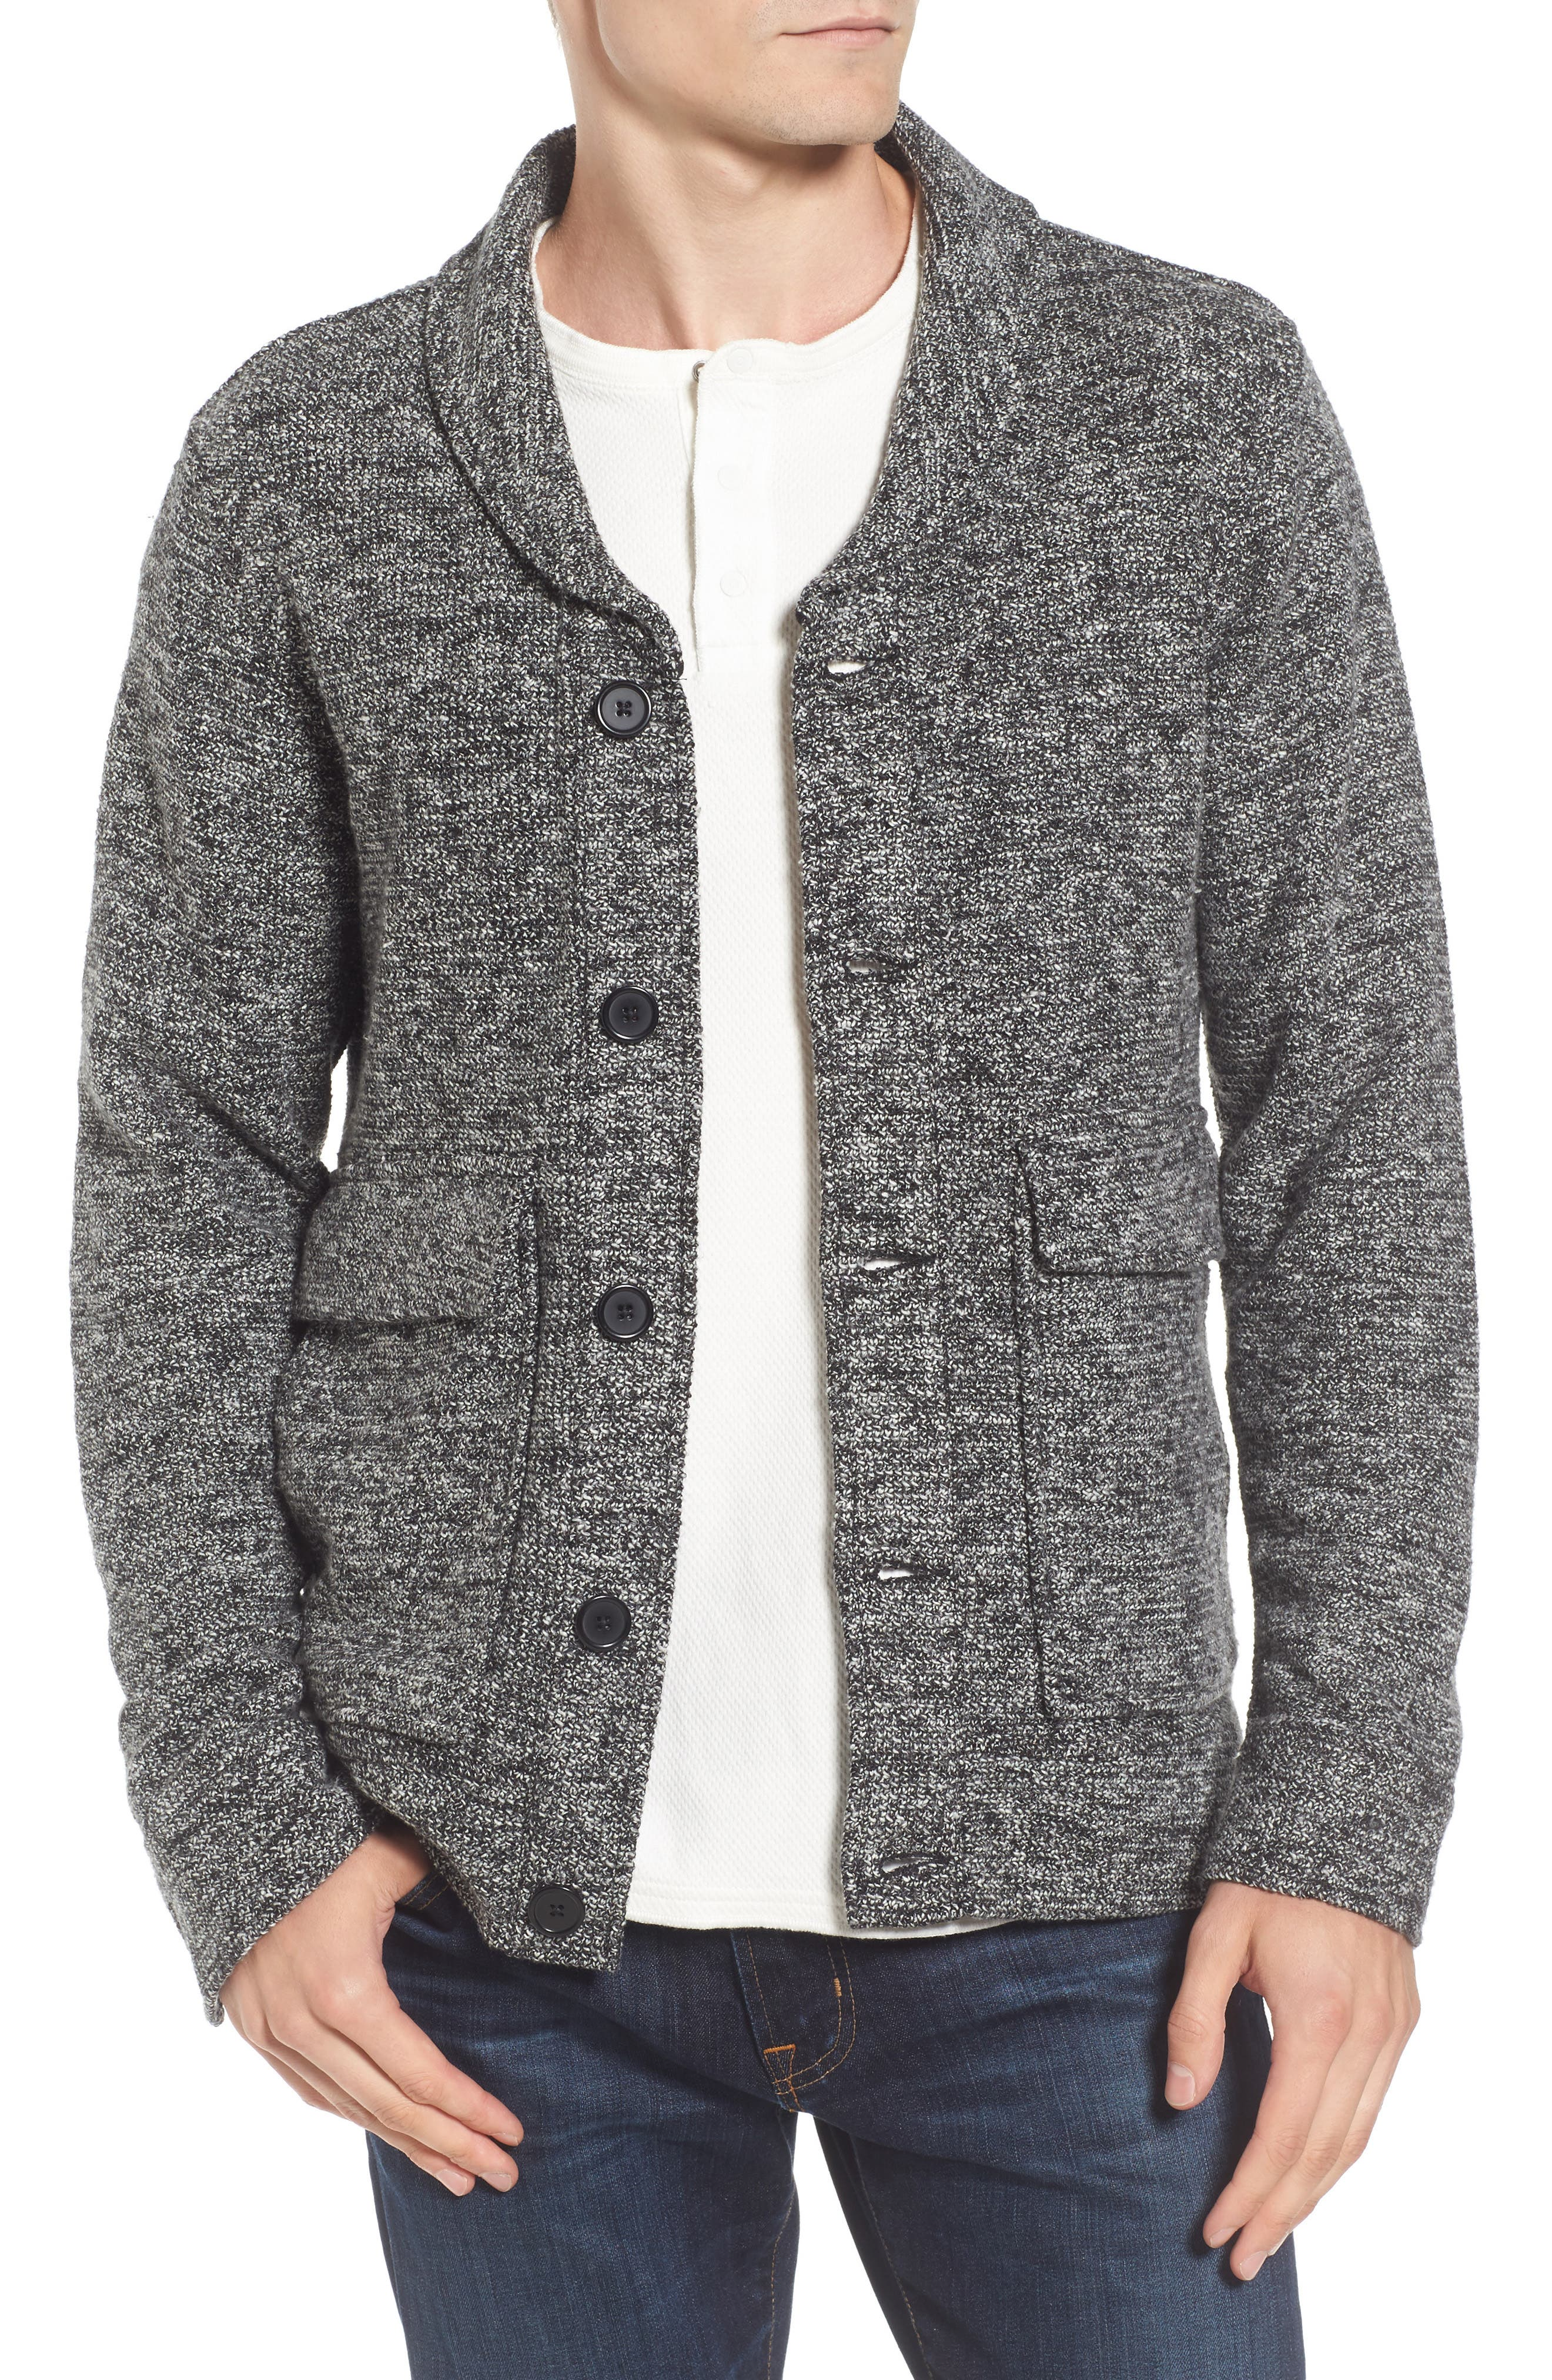 Tunellus Shawl Neck Cardigan